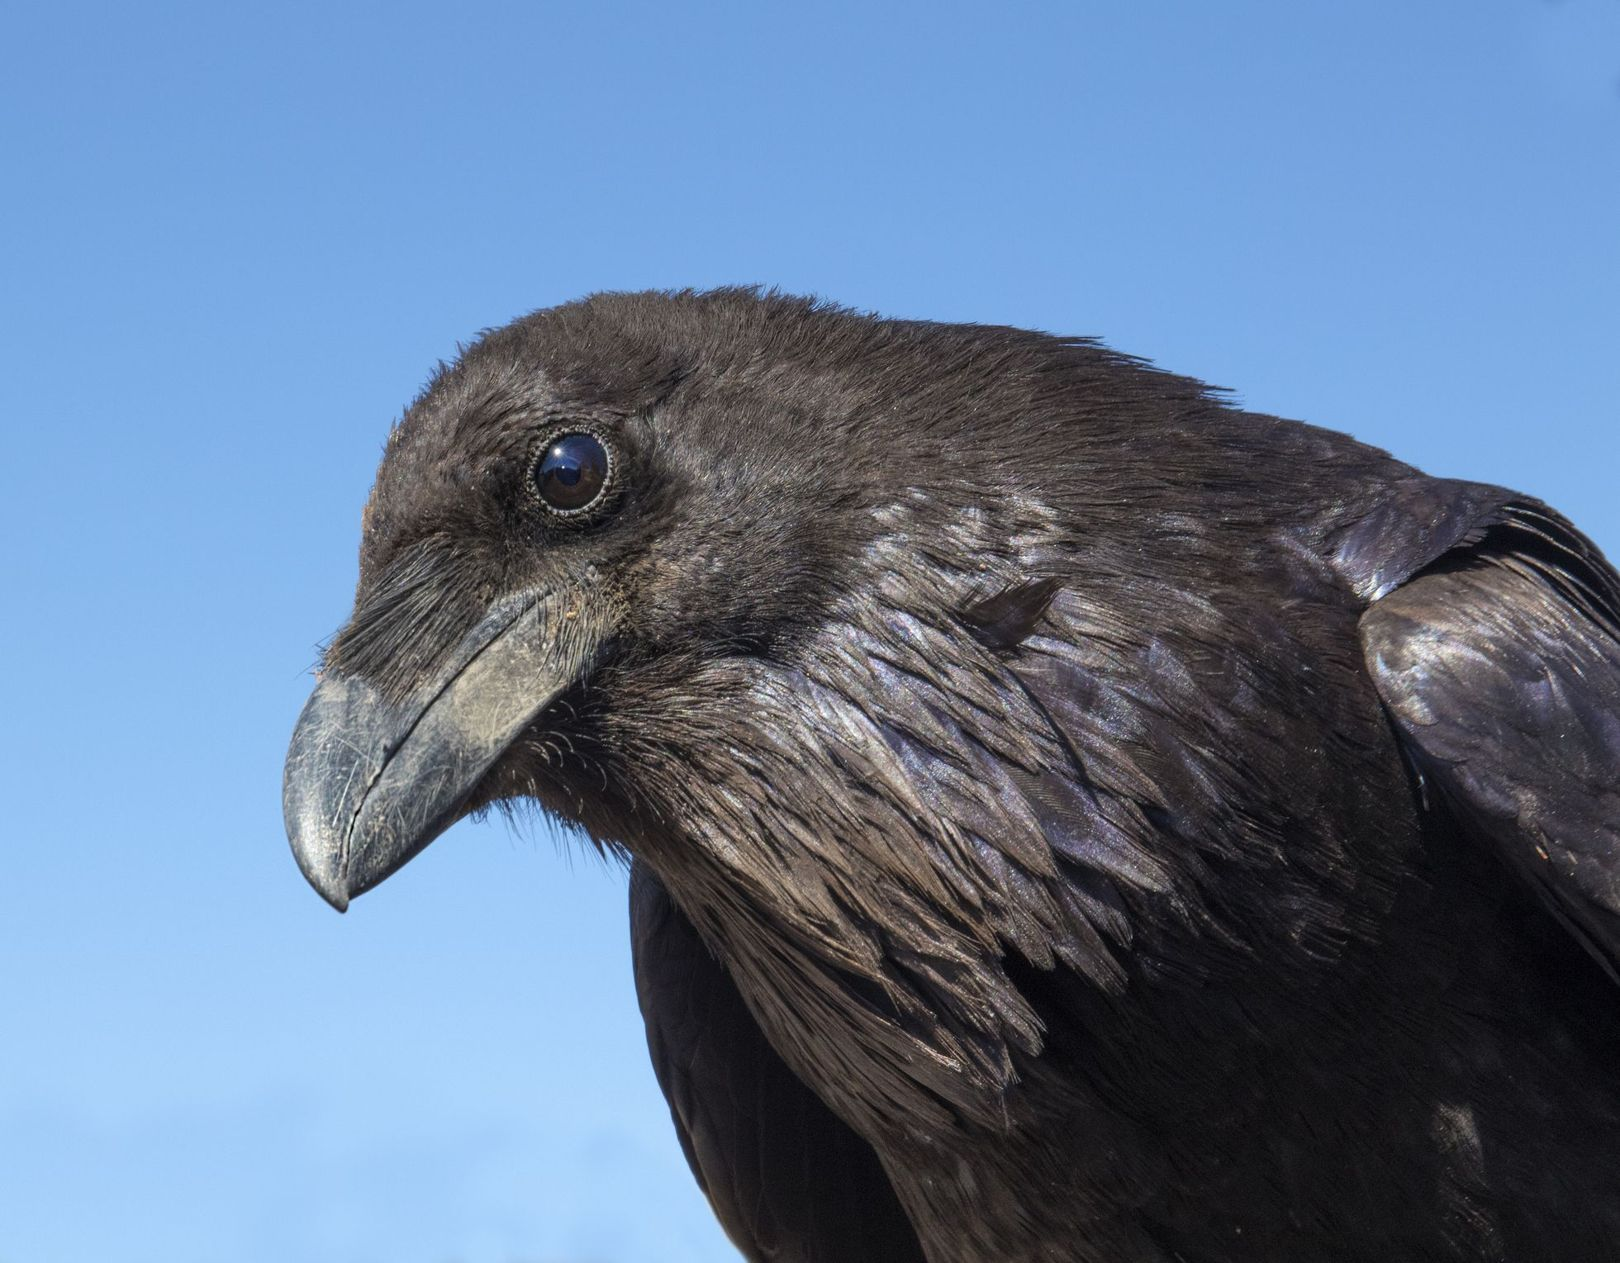 Calculating, plotting ravens make plans for their future